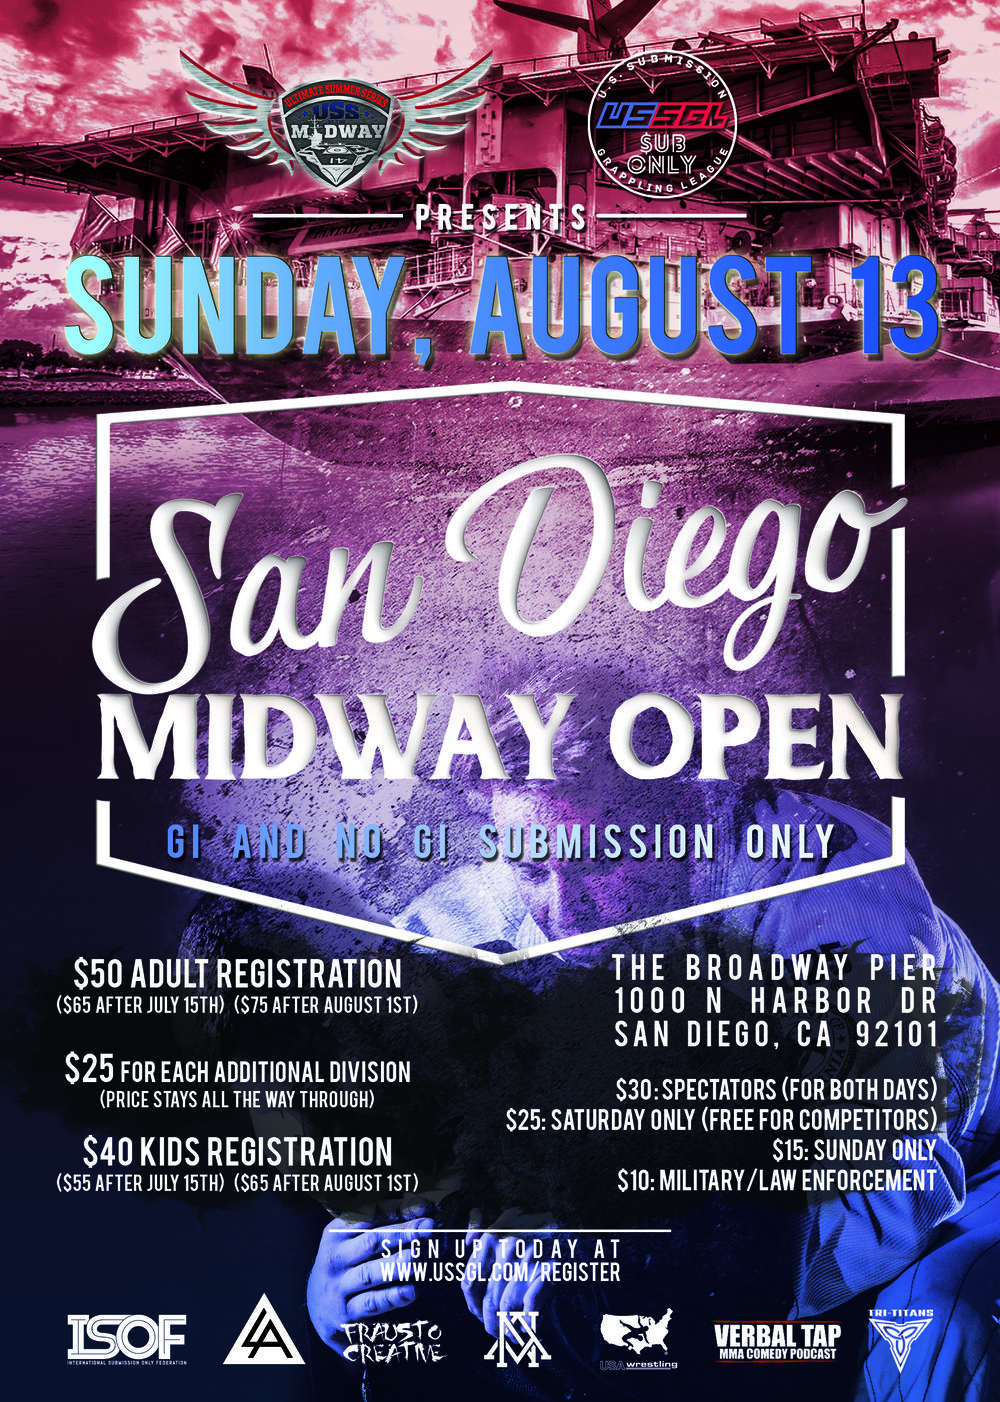 SD MIdway Open - August 13, 2017Weigh Ins On Site, 9 AMSCHEDULE